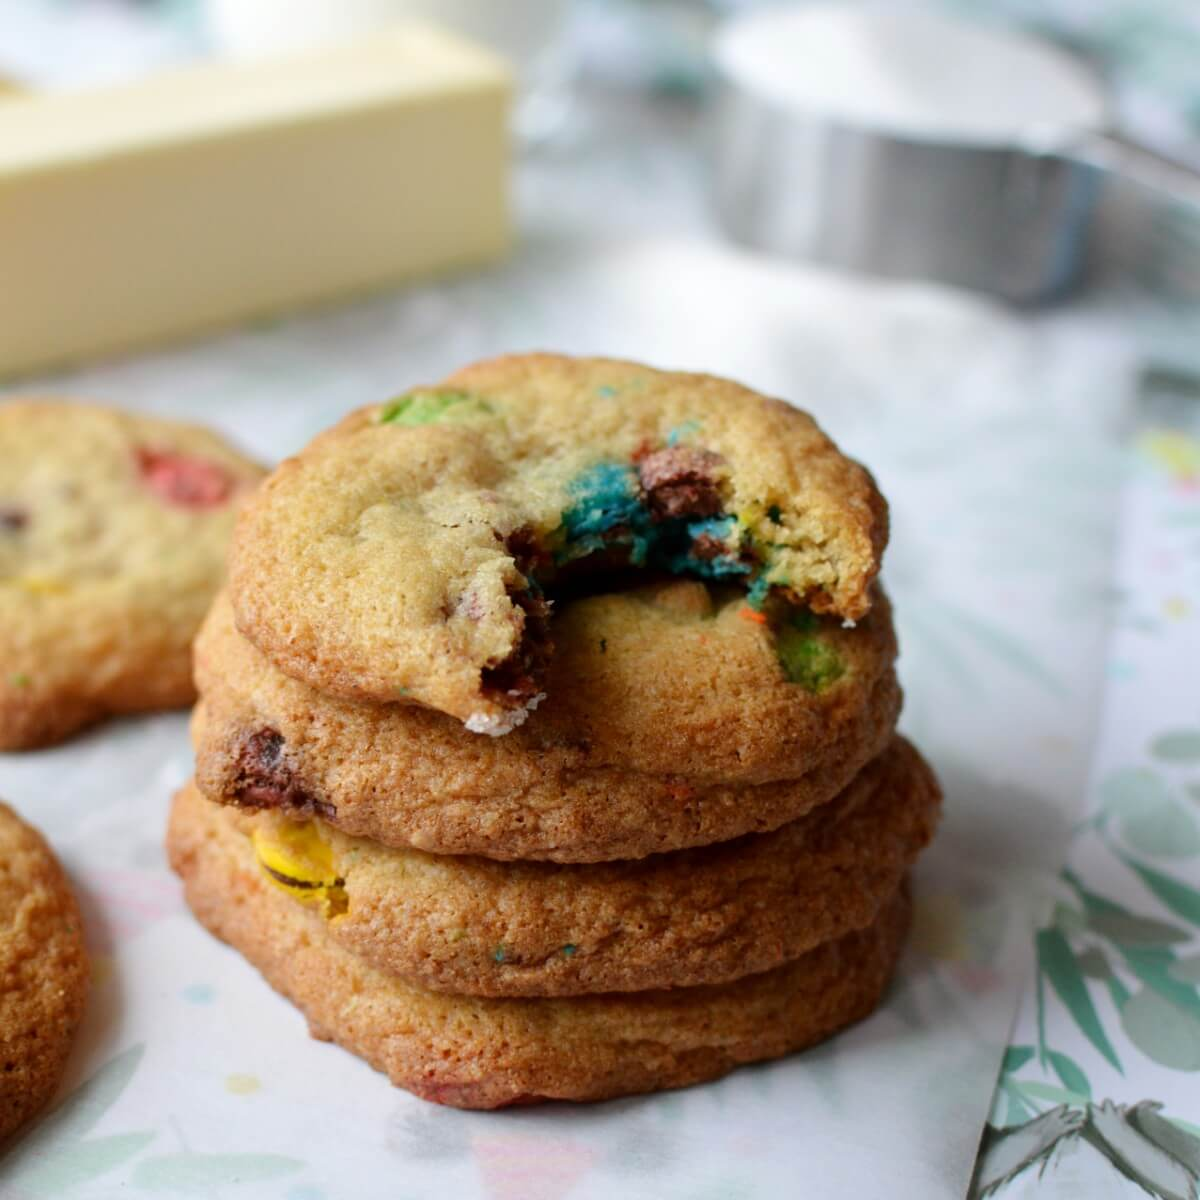 A stack of gluten free cookies with a bite out of the top cookie.